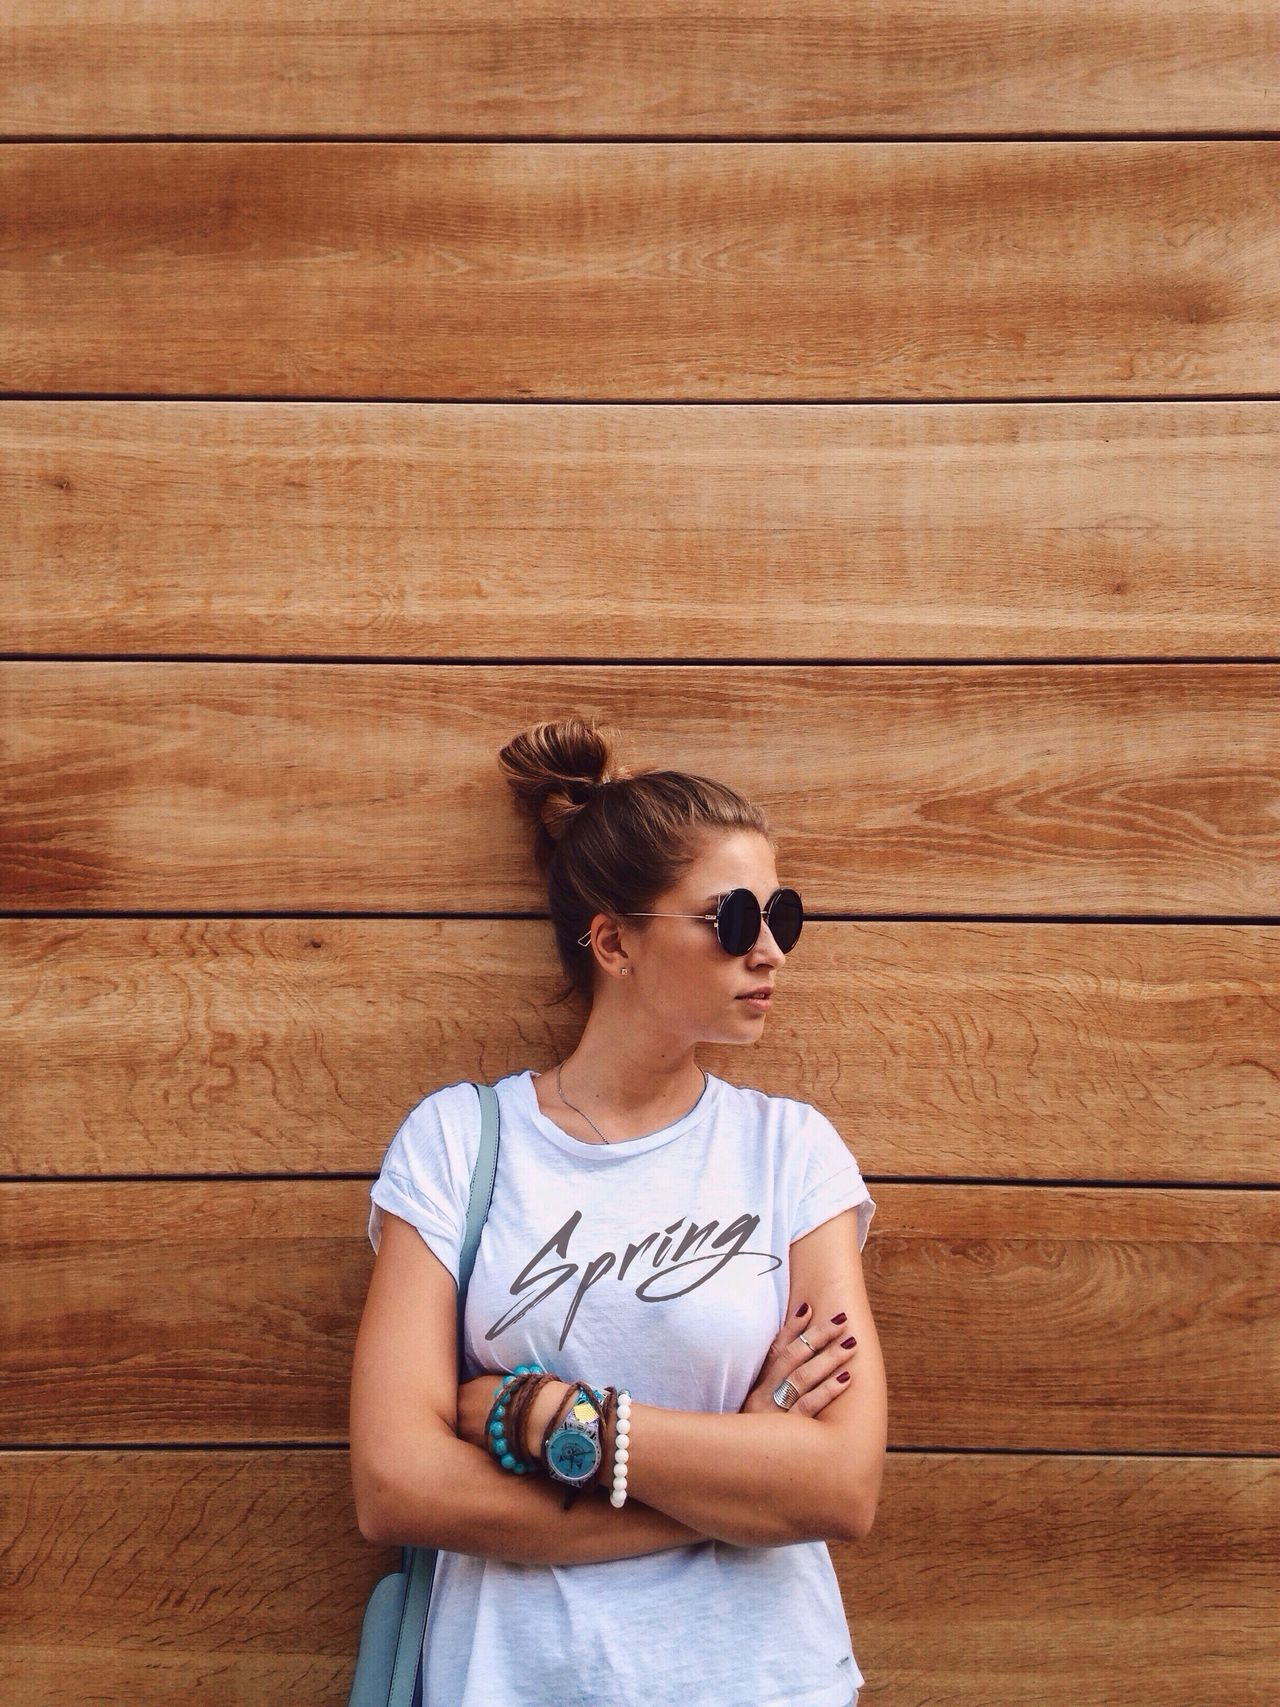 Spring vibes Sunglasses One Person Young Adult Fashion Standing One Woman Only Portrait Only Women Outdoors Wooden House Clothes Stylish Outfit #OOTD Live For The Story